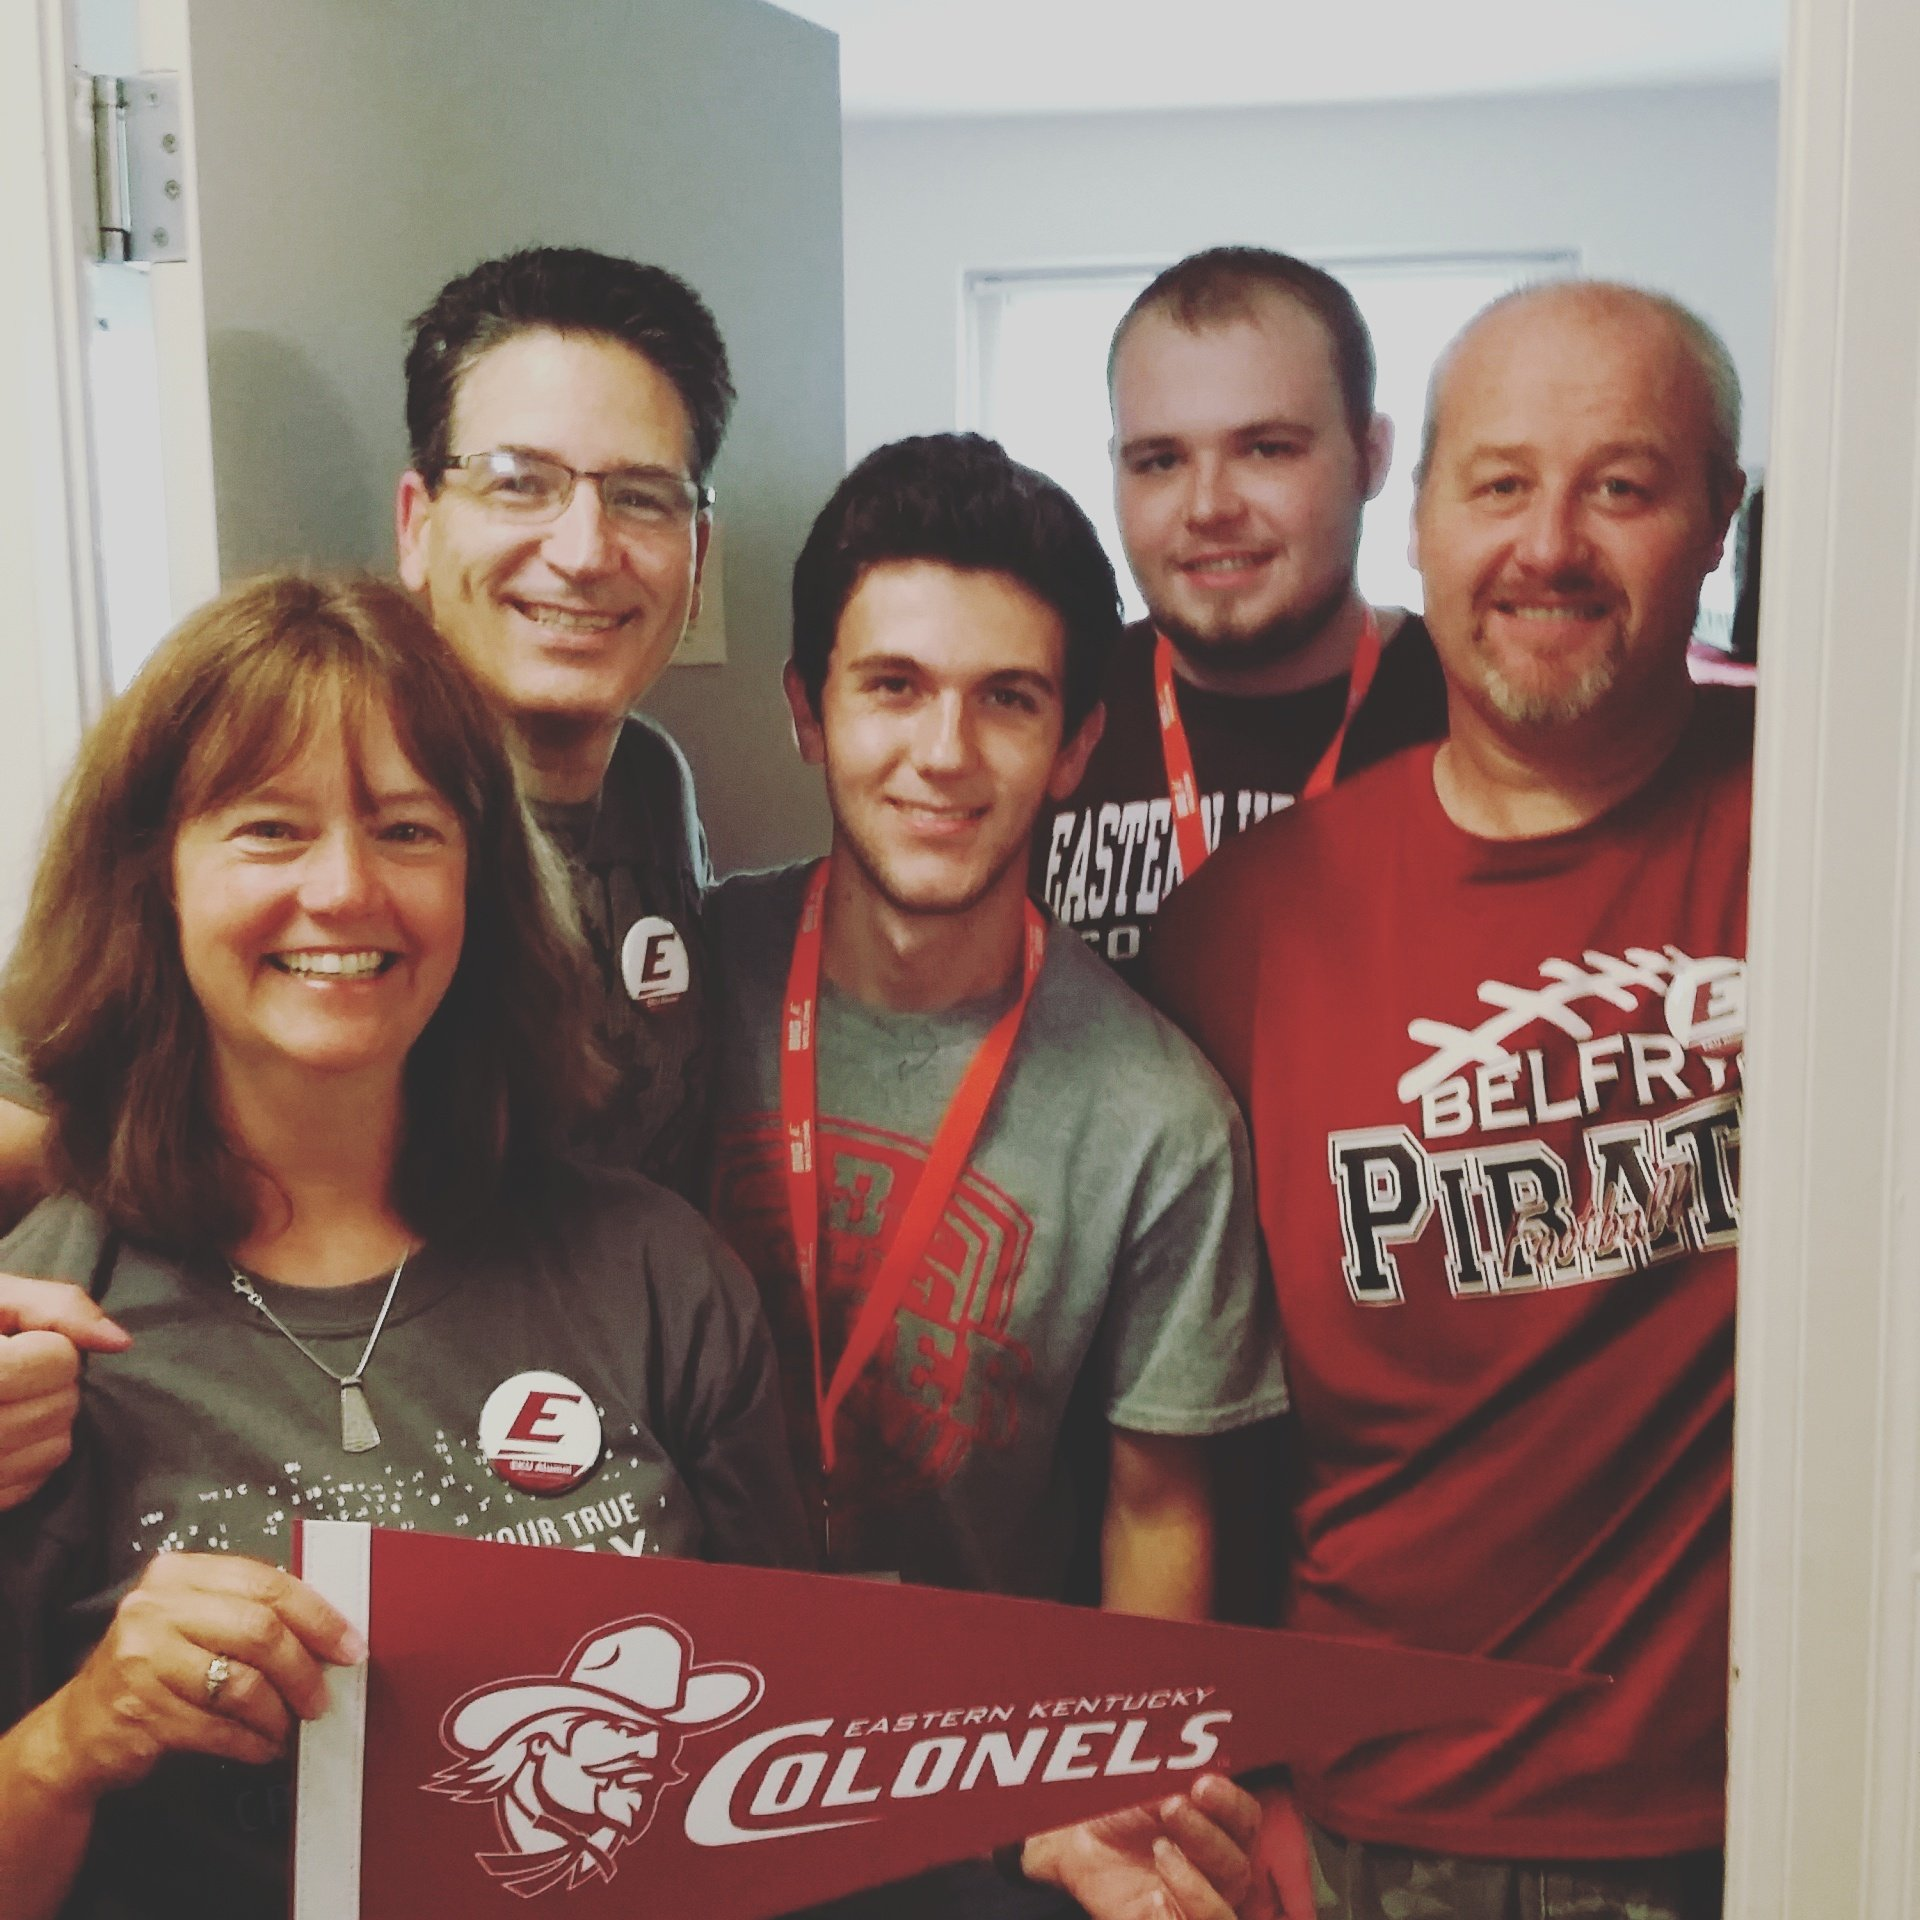 Welcoming #EKU20 legacy students Matt & Matt w/ #ForeverColonels parents. Welcome to the #ColonelNation #BigEwelcome https://t.co/XTbCMCVLC5